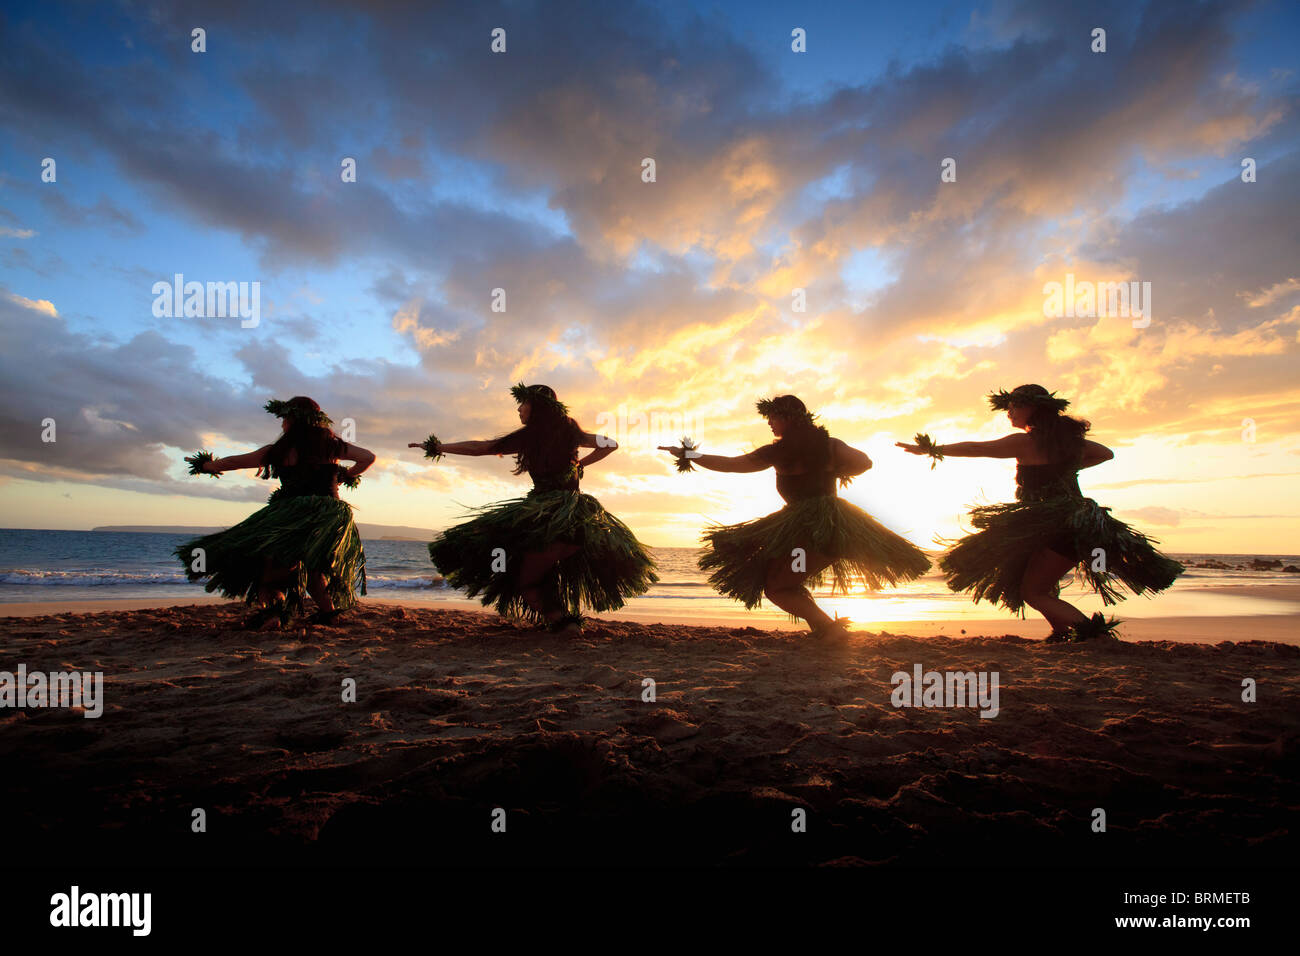 silhouette-of-hula-dancers-at-sunset-at-palauea-beach-maui-hawaii-BRMETB.jpg